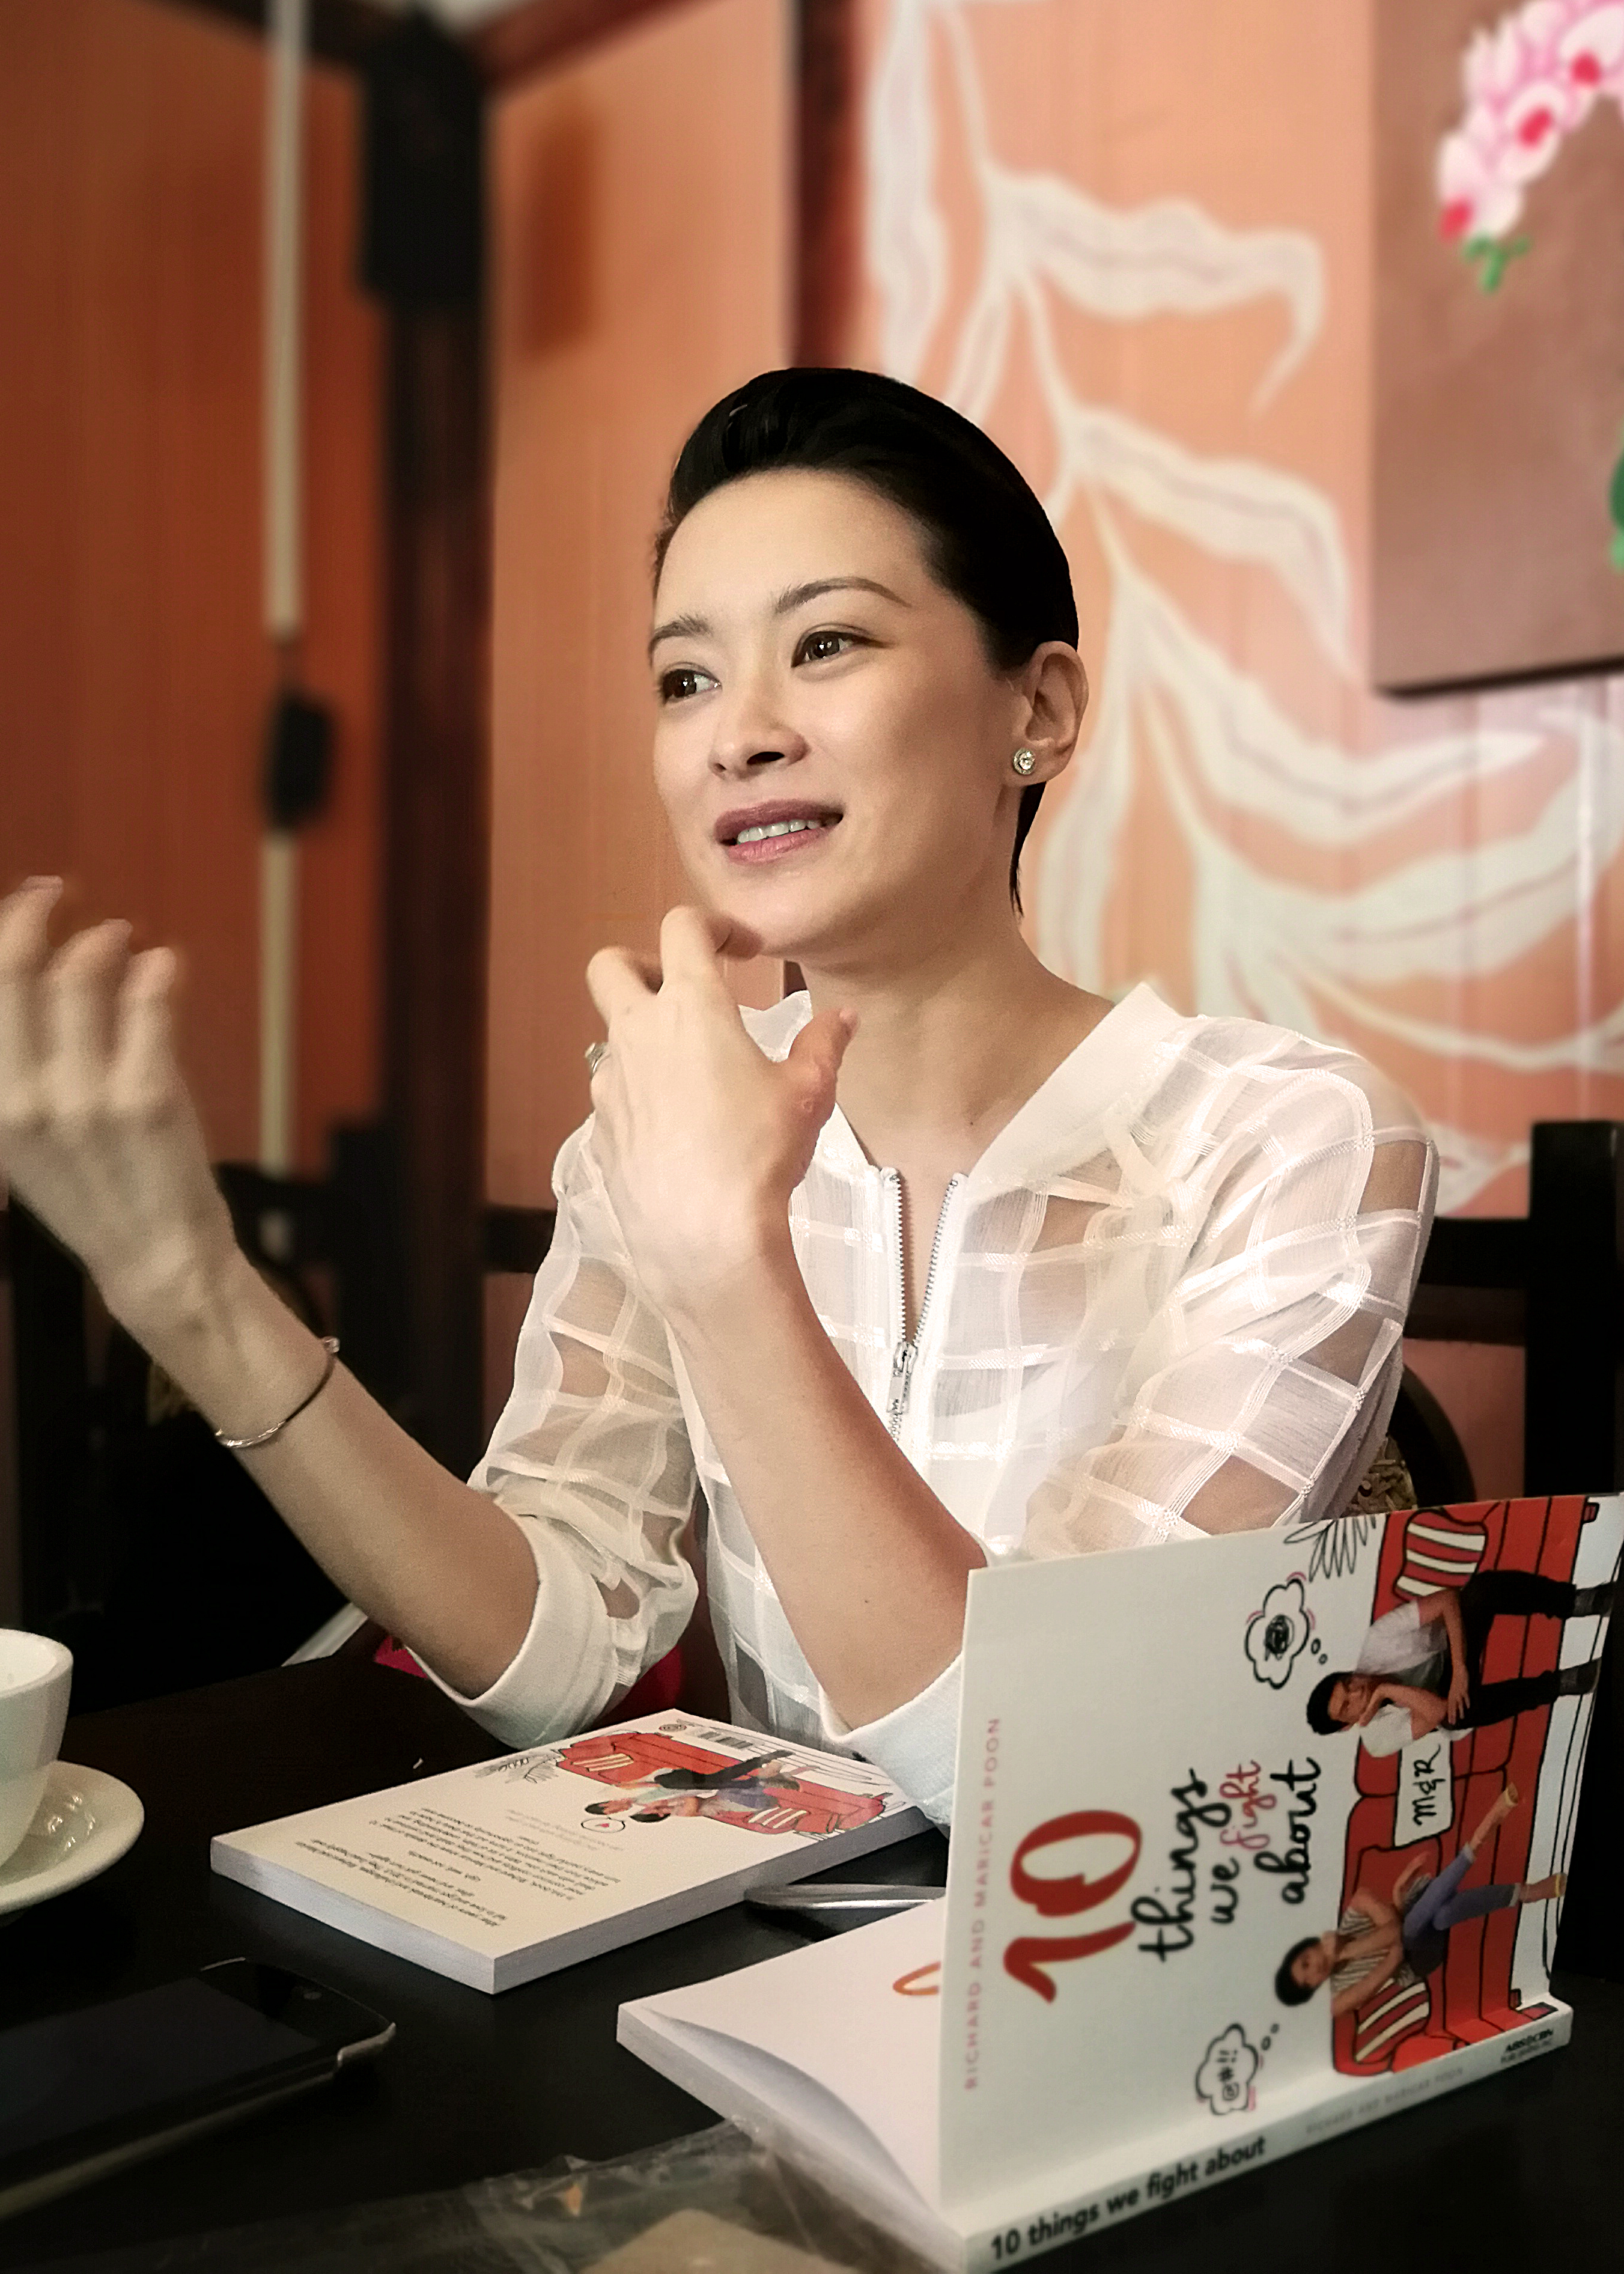 MOMMY-IN-WAITING. Maricar says she and Richard Poon are patiently waiting to be blessed with a child.